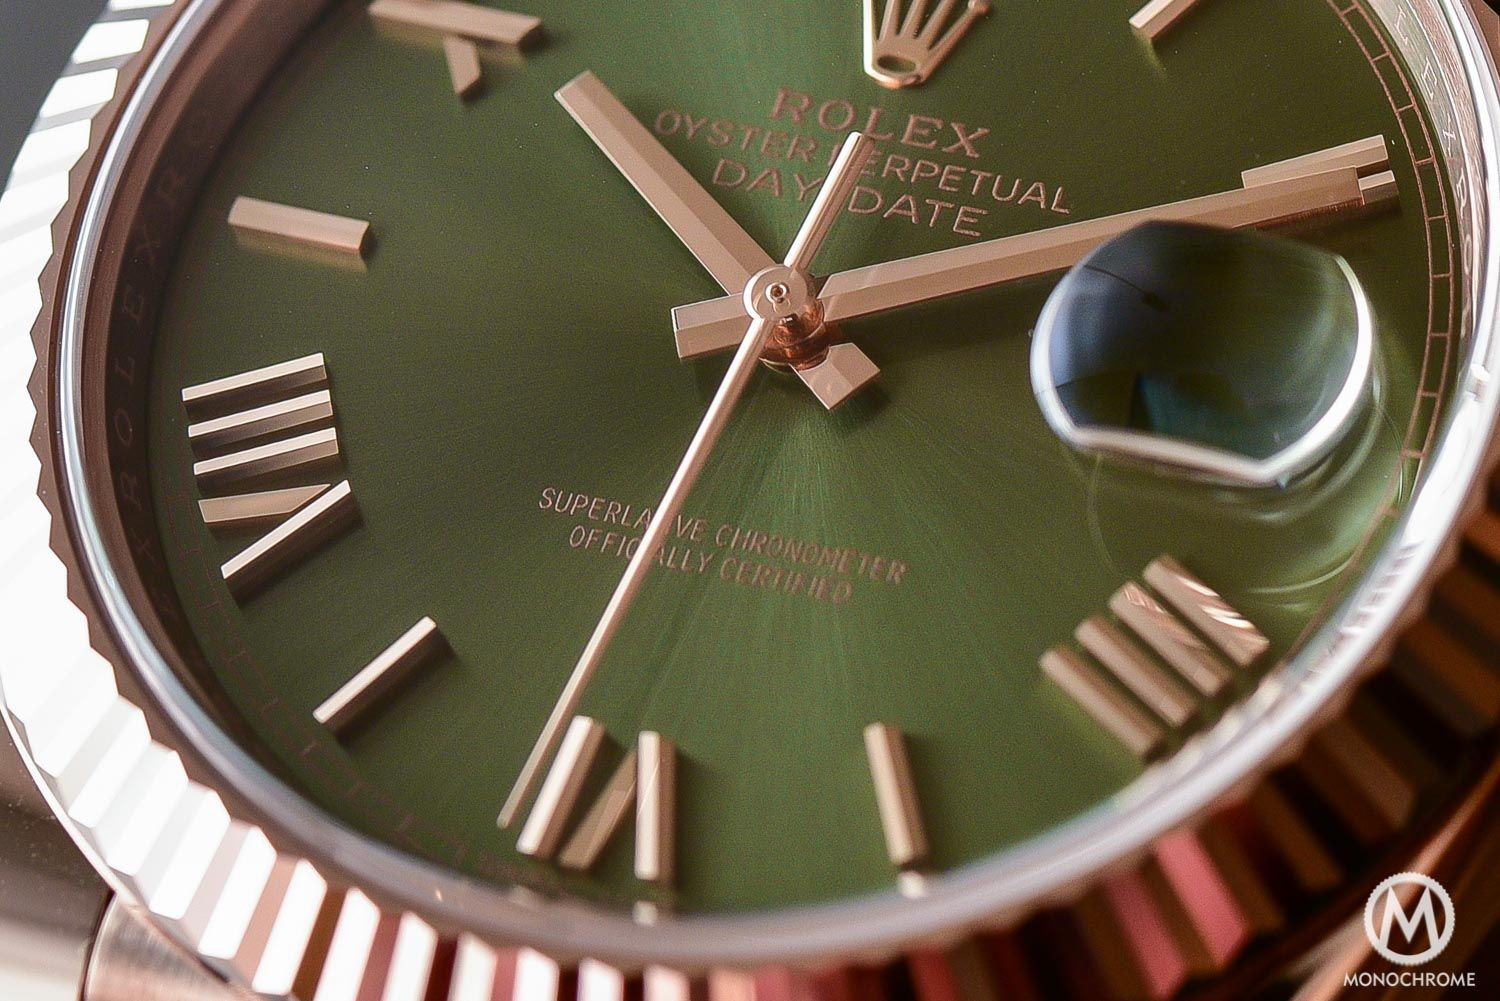 Rolex Day-Date 60th Anniversary Edition, the President's Watch with Green Dial